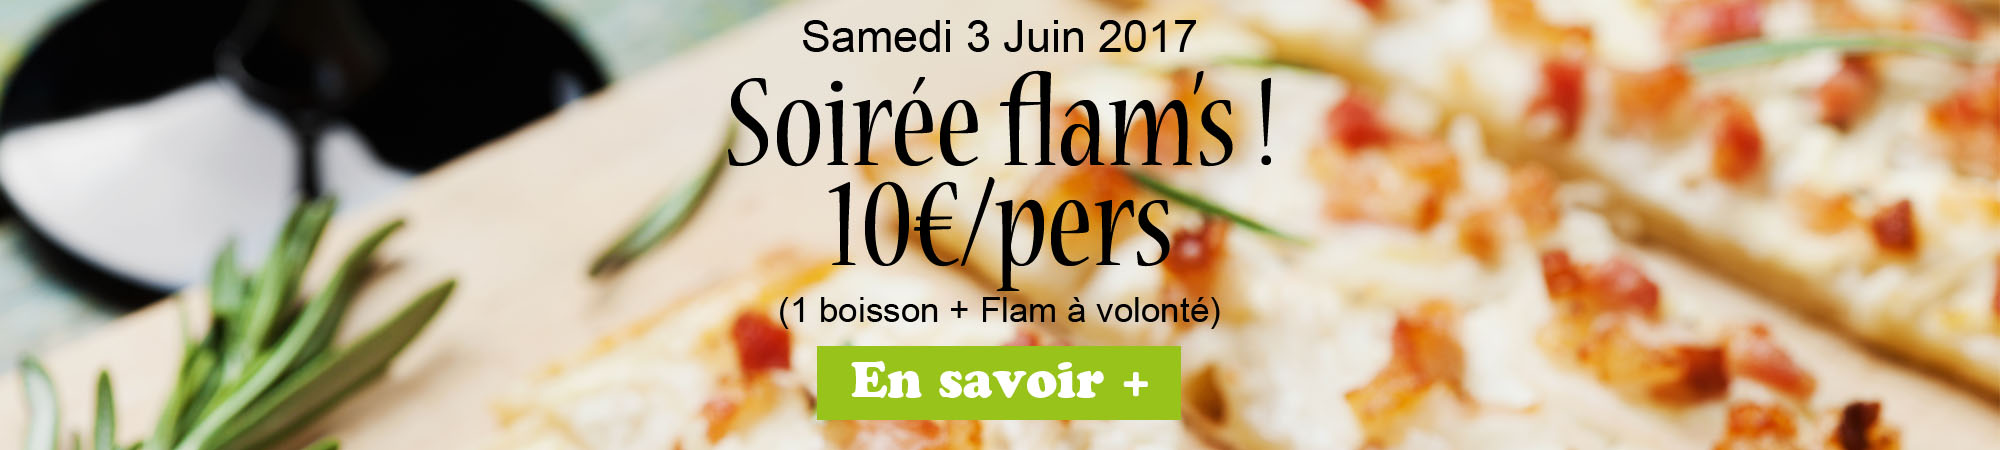 ban_soiree_tartes_flambees